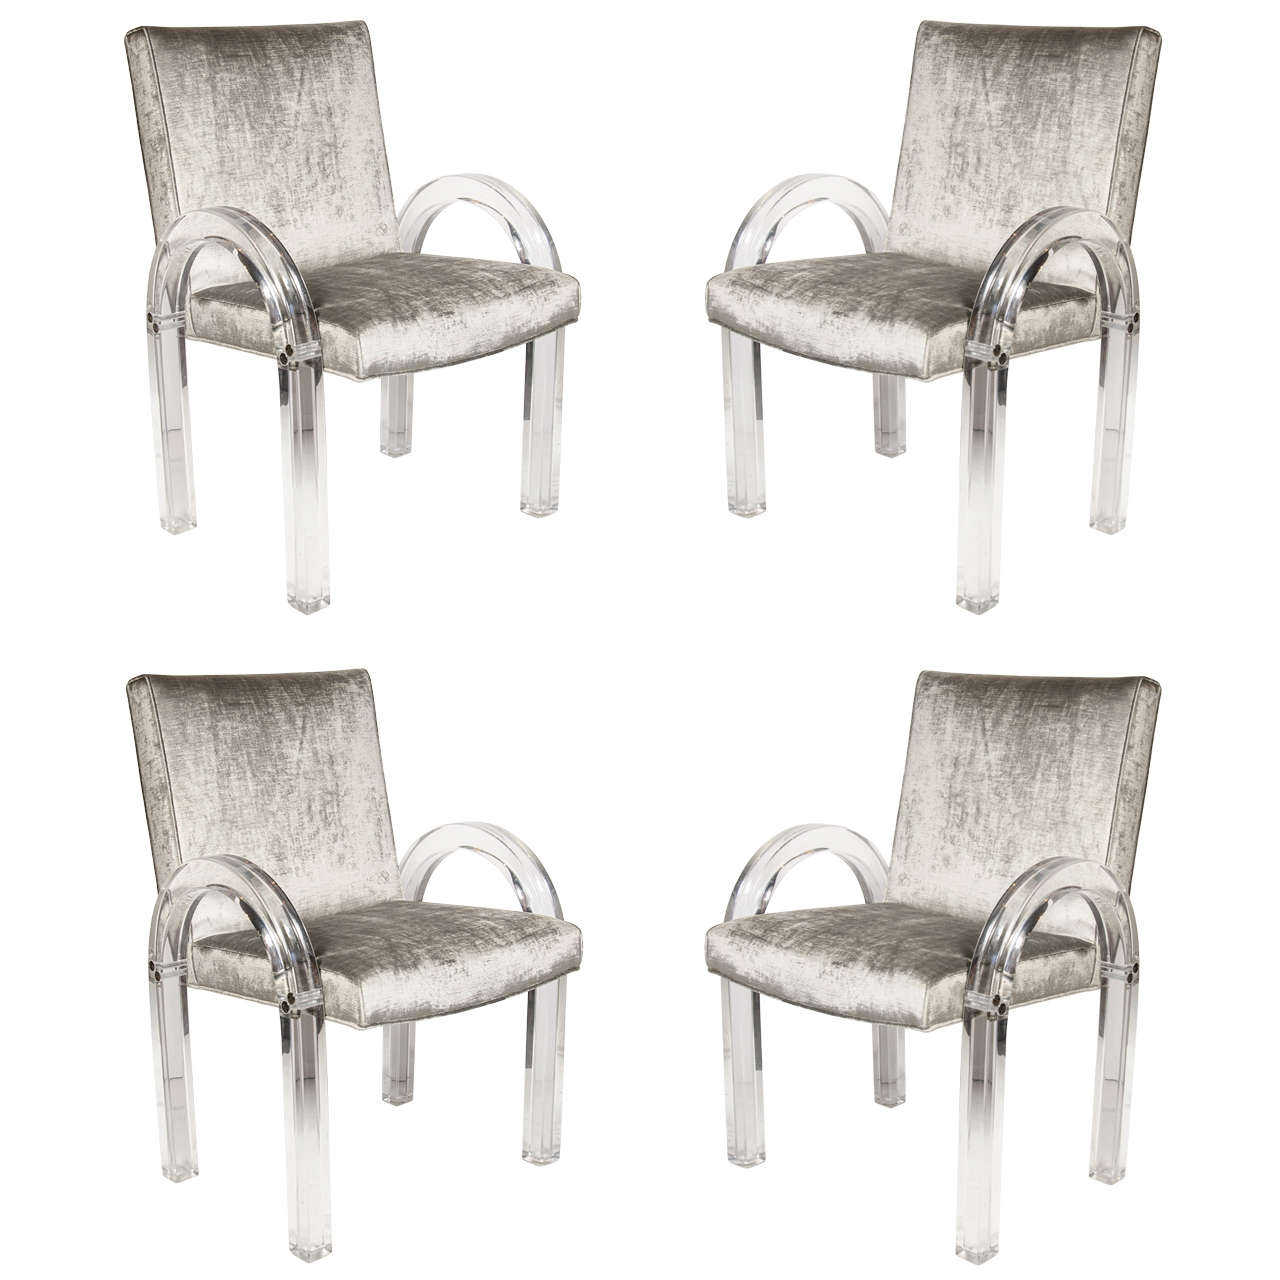 acrylic dining chair buy bedroom online set of four 39u 39 shaped lucite chairs by charles